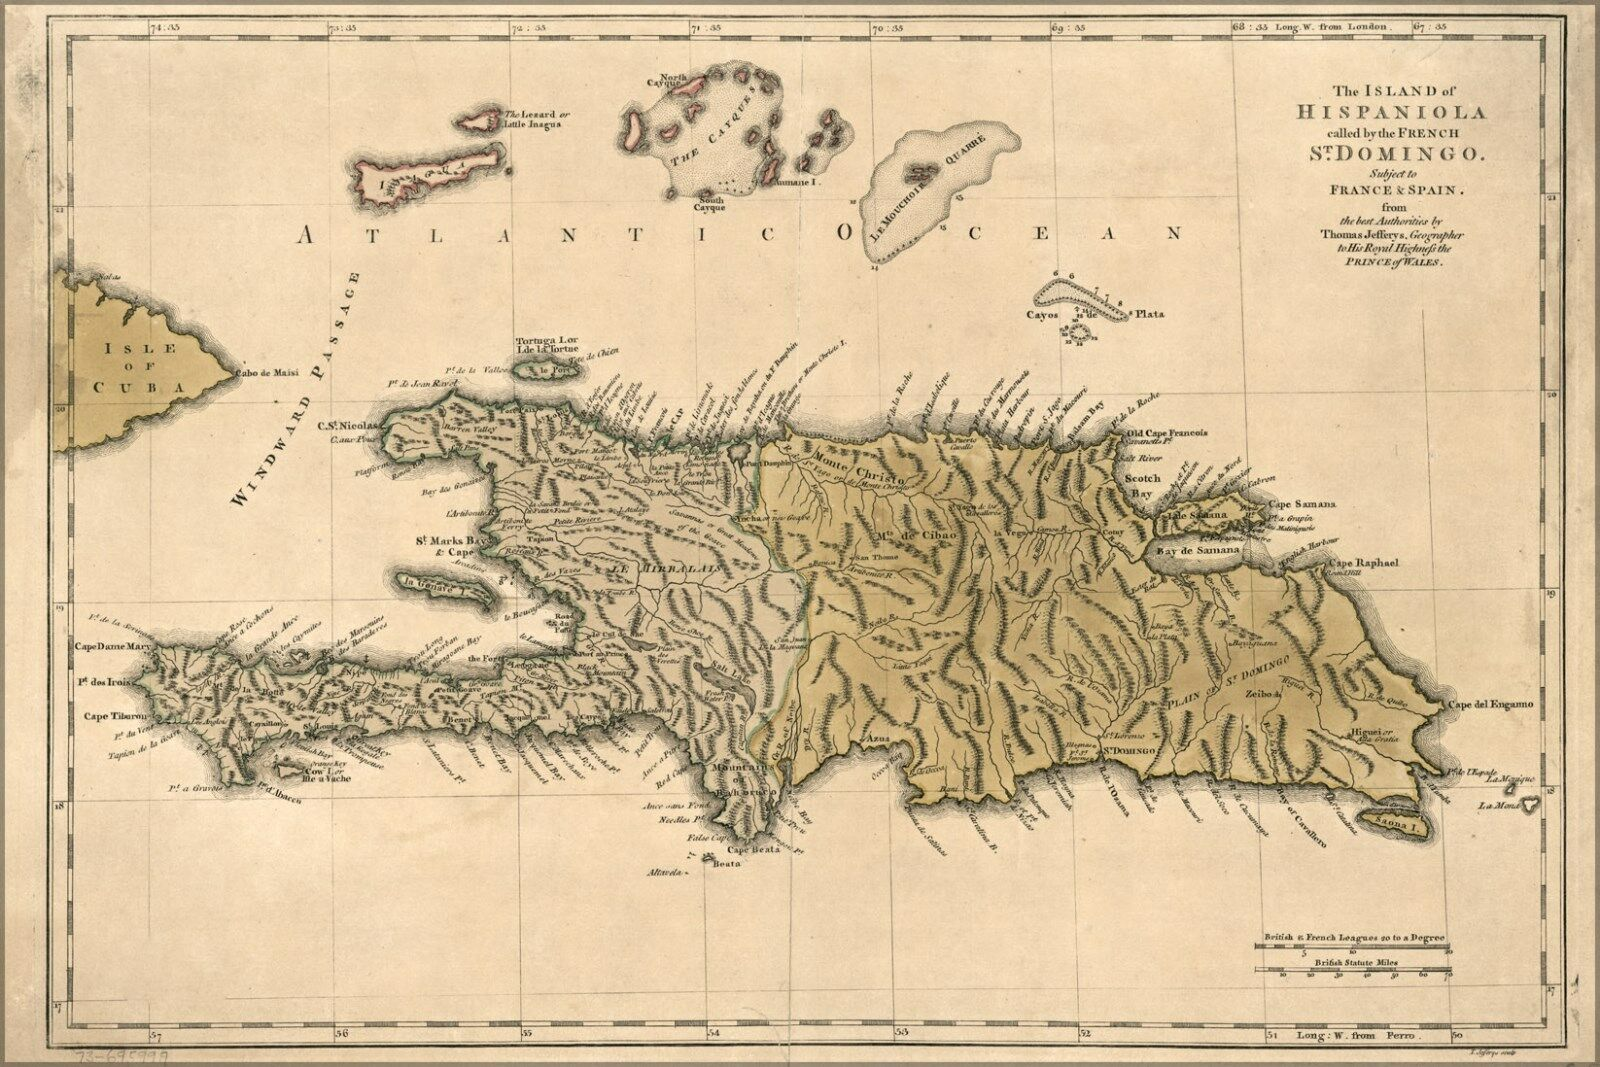 Poster, Many Größes; Map Of Hispaniola Haiti Dominican Republic 1762